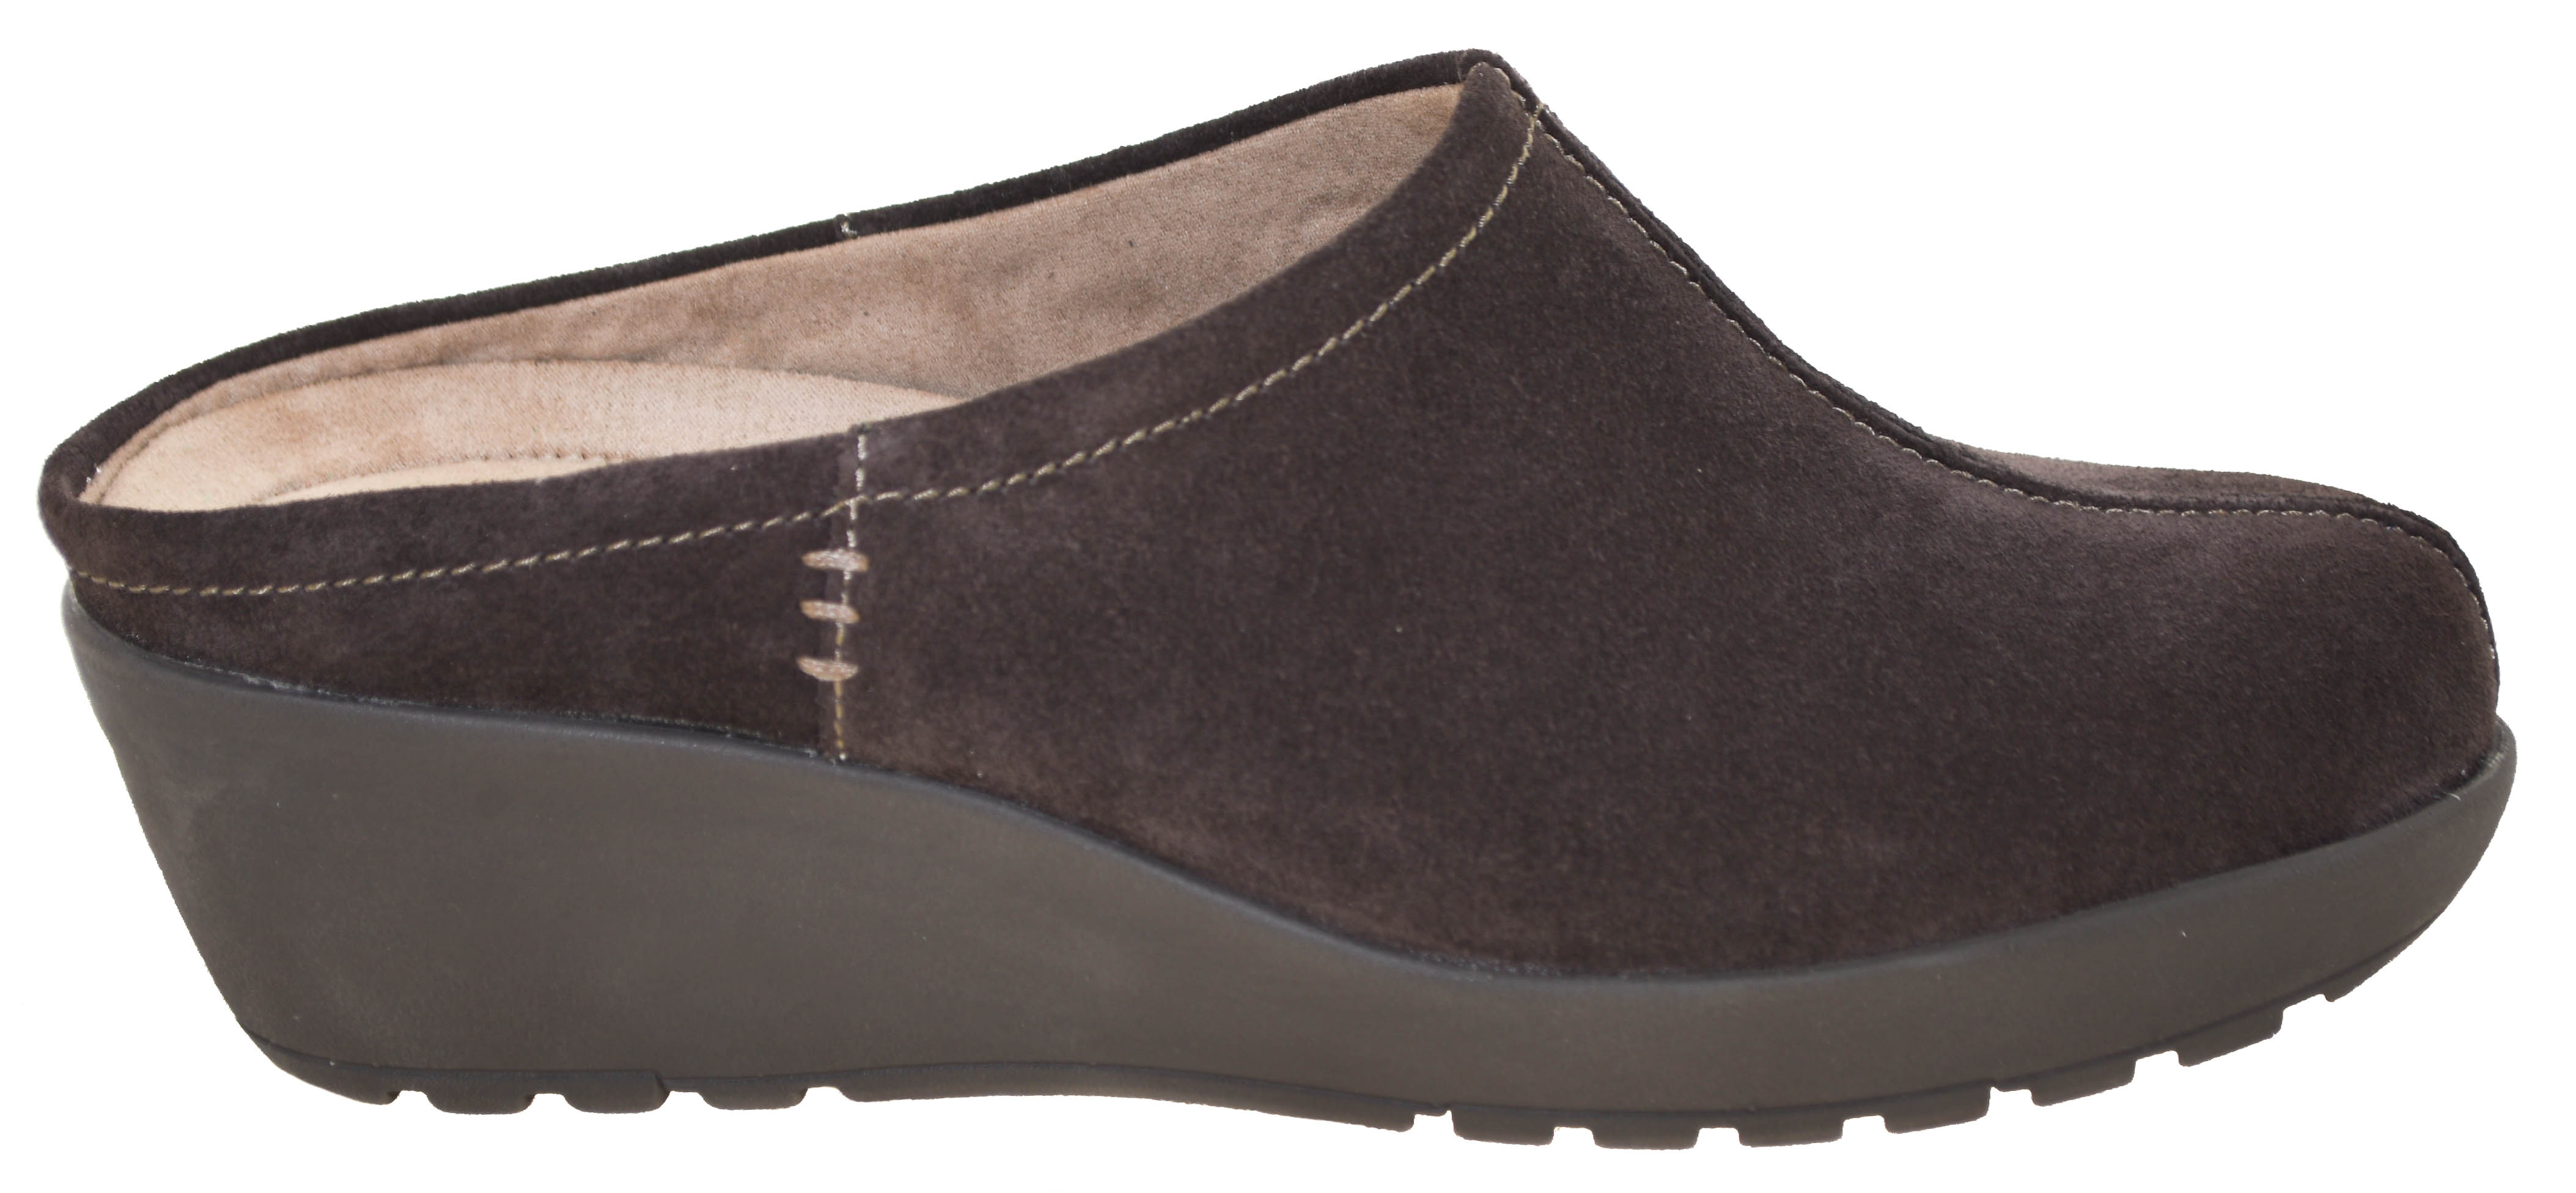 27f58f9a84fd Details about Easy Spirit Women s Jaiva Mules Brown Suede